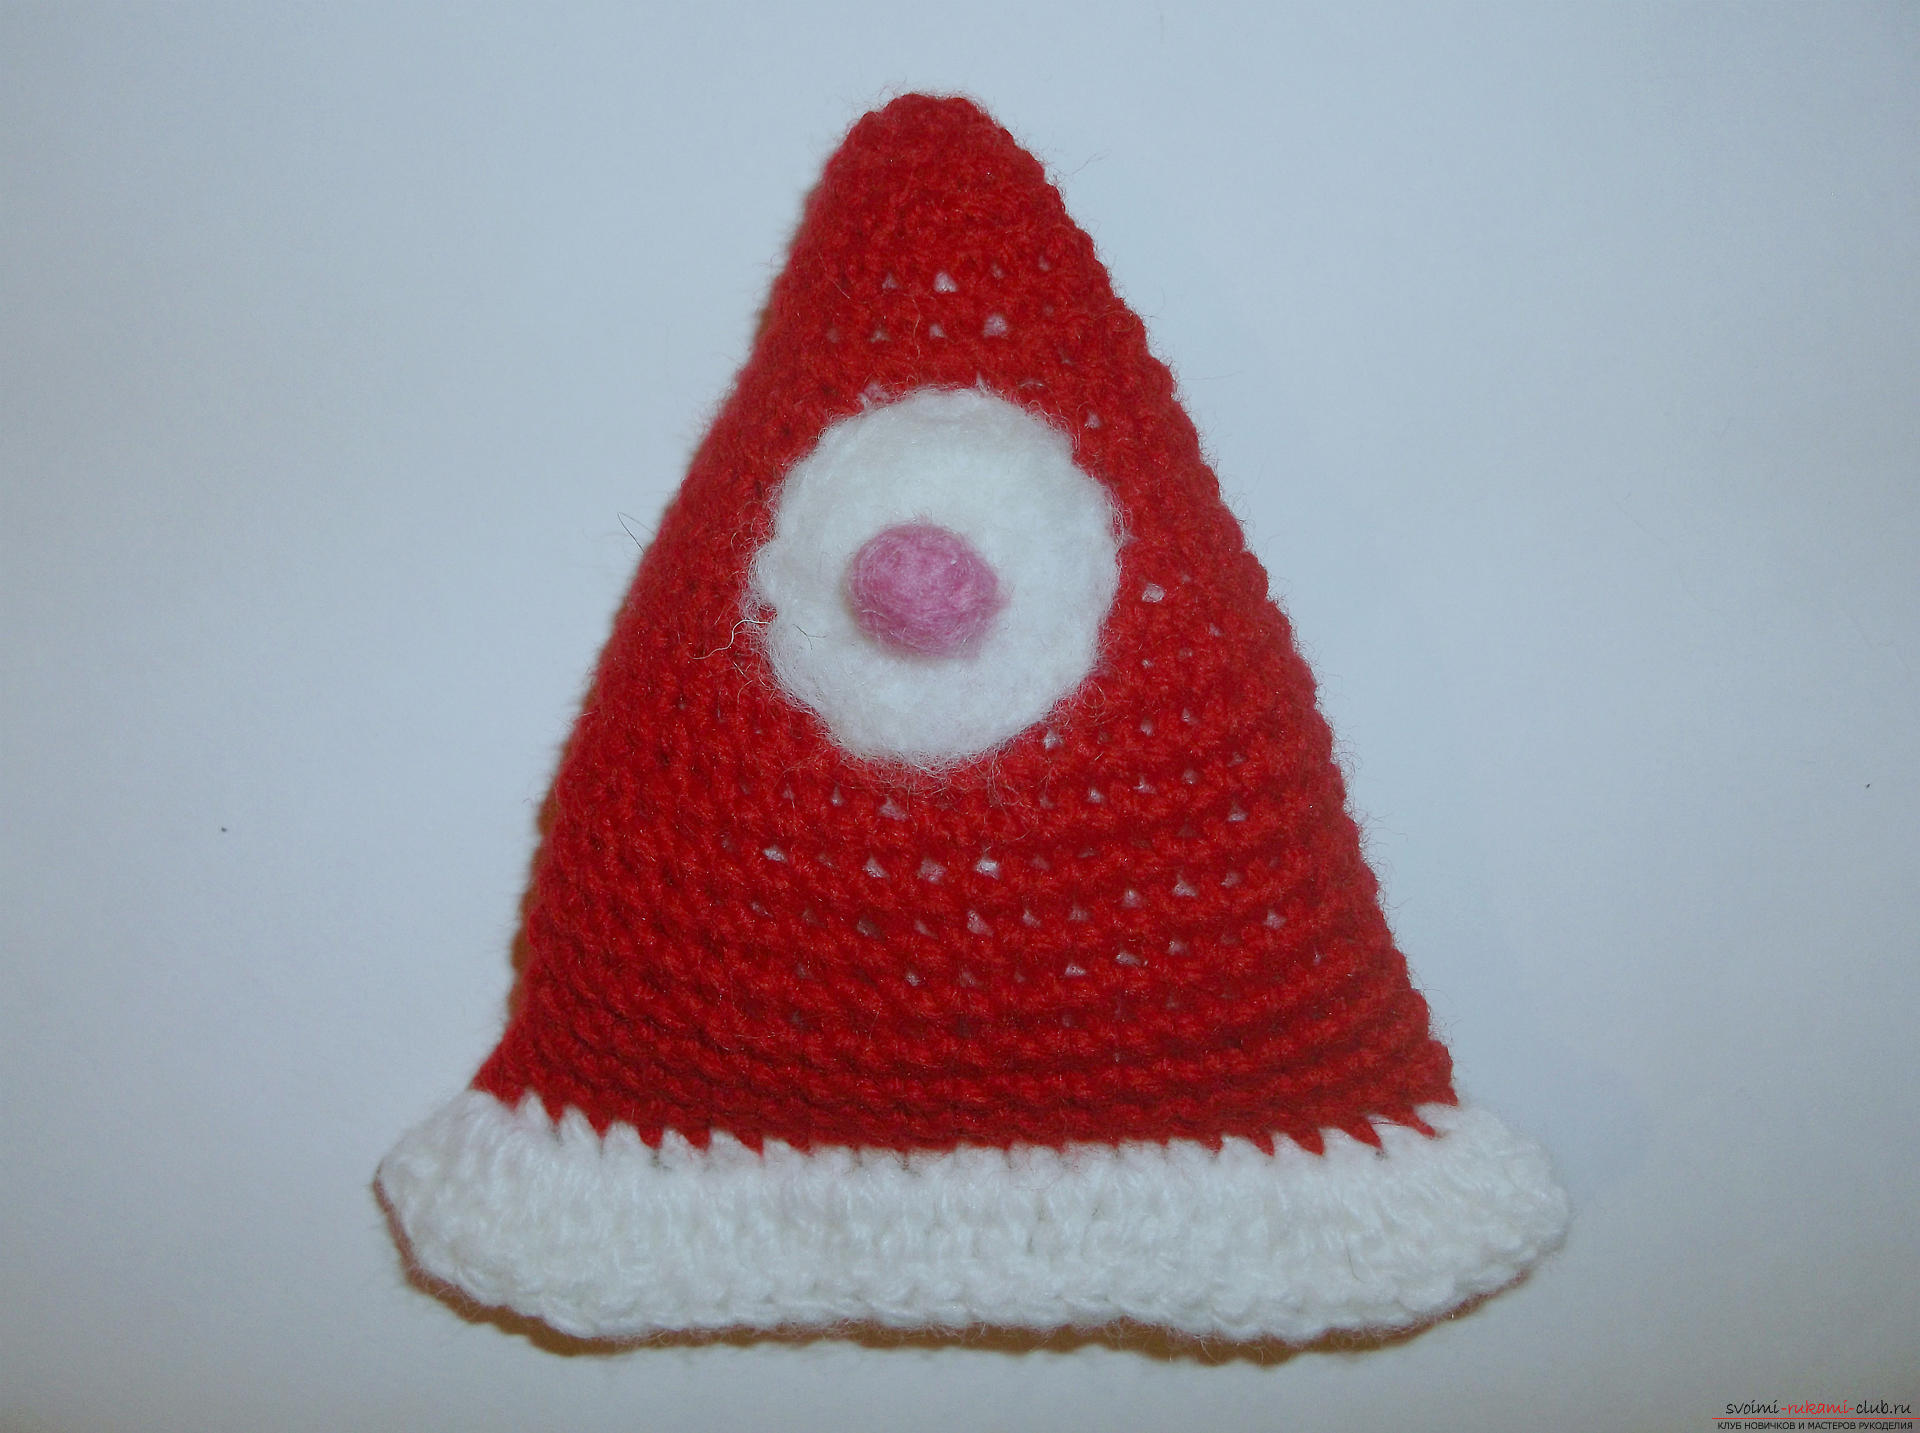 Photo to the lesson on Crochet Crochet lessons. Photo №6